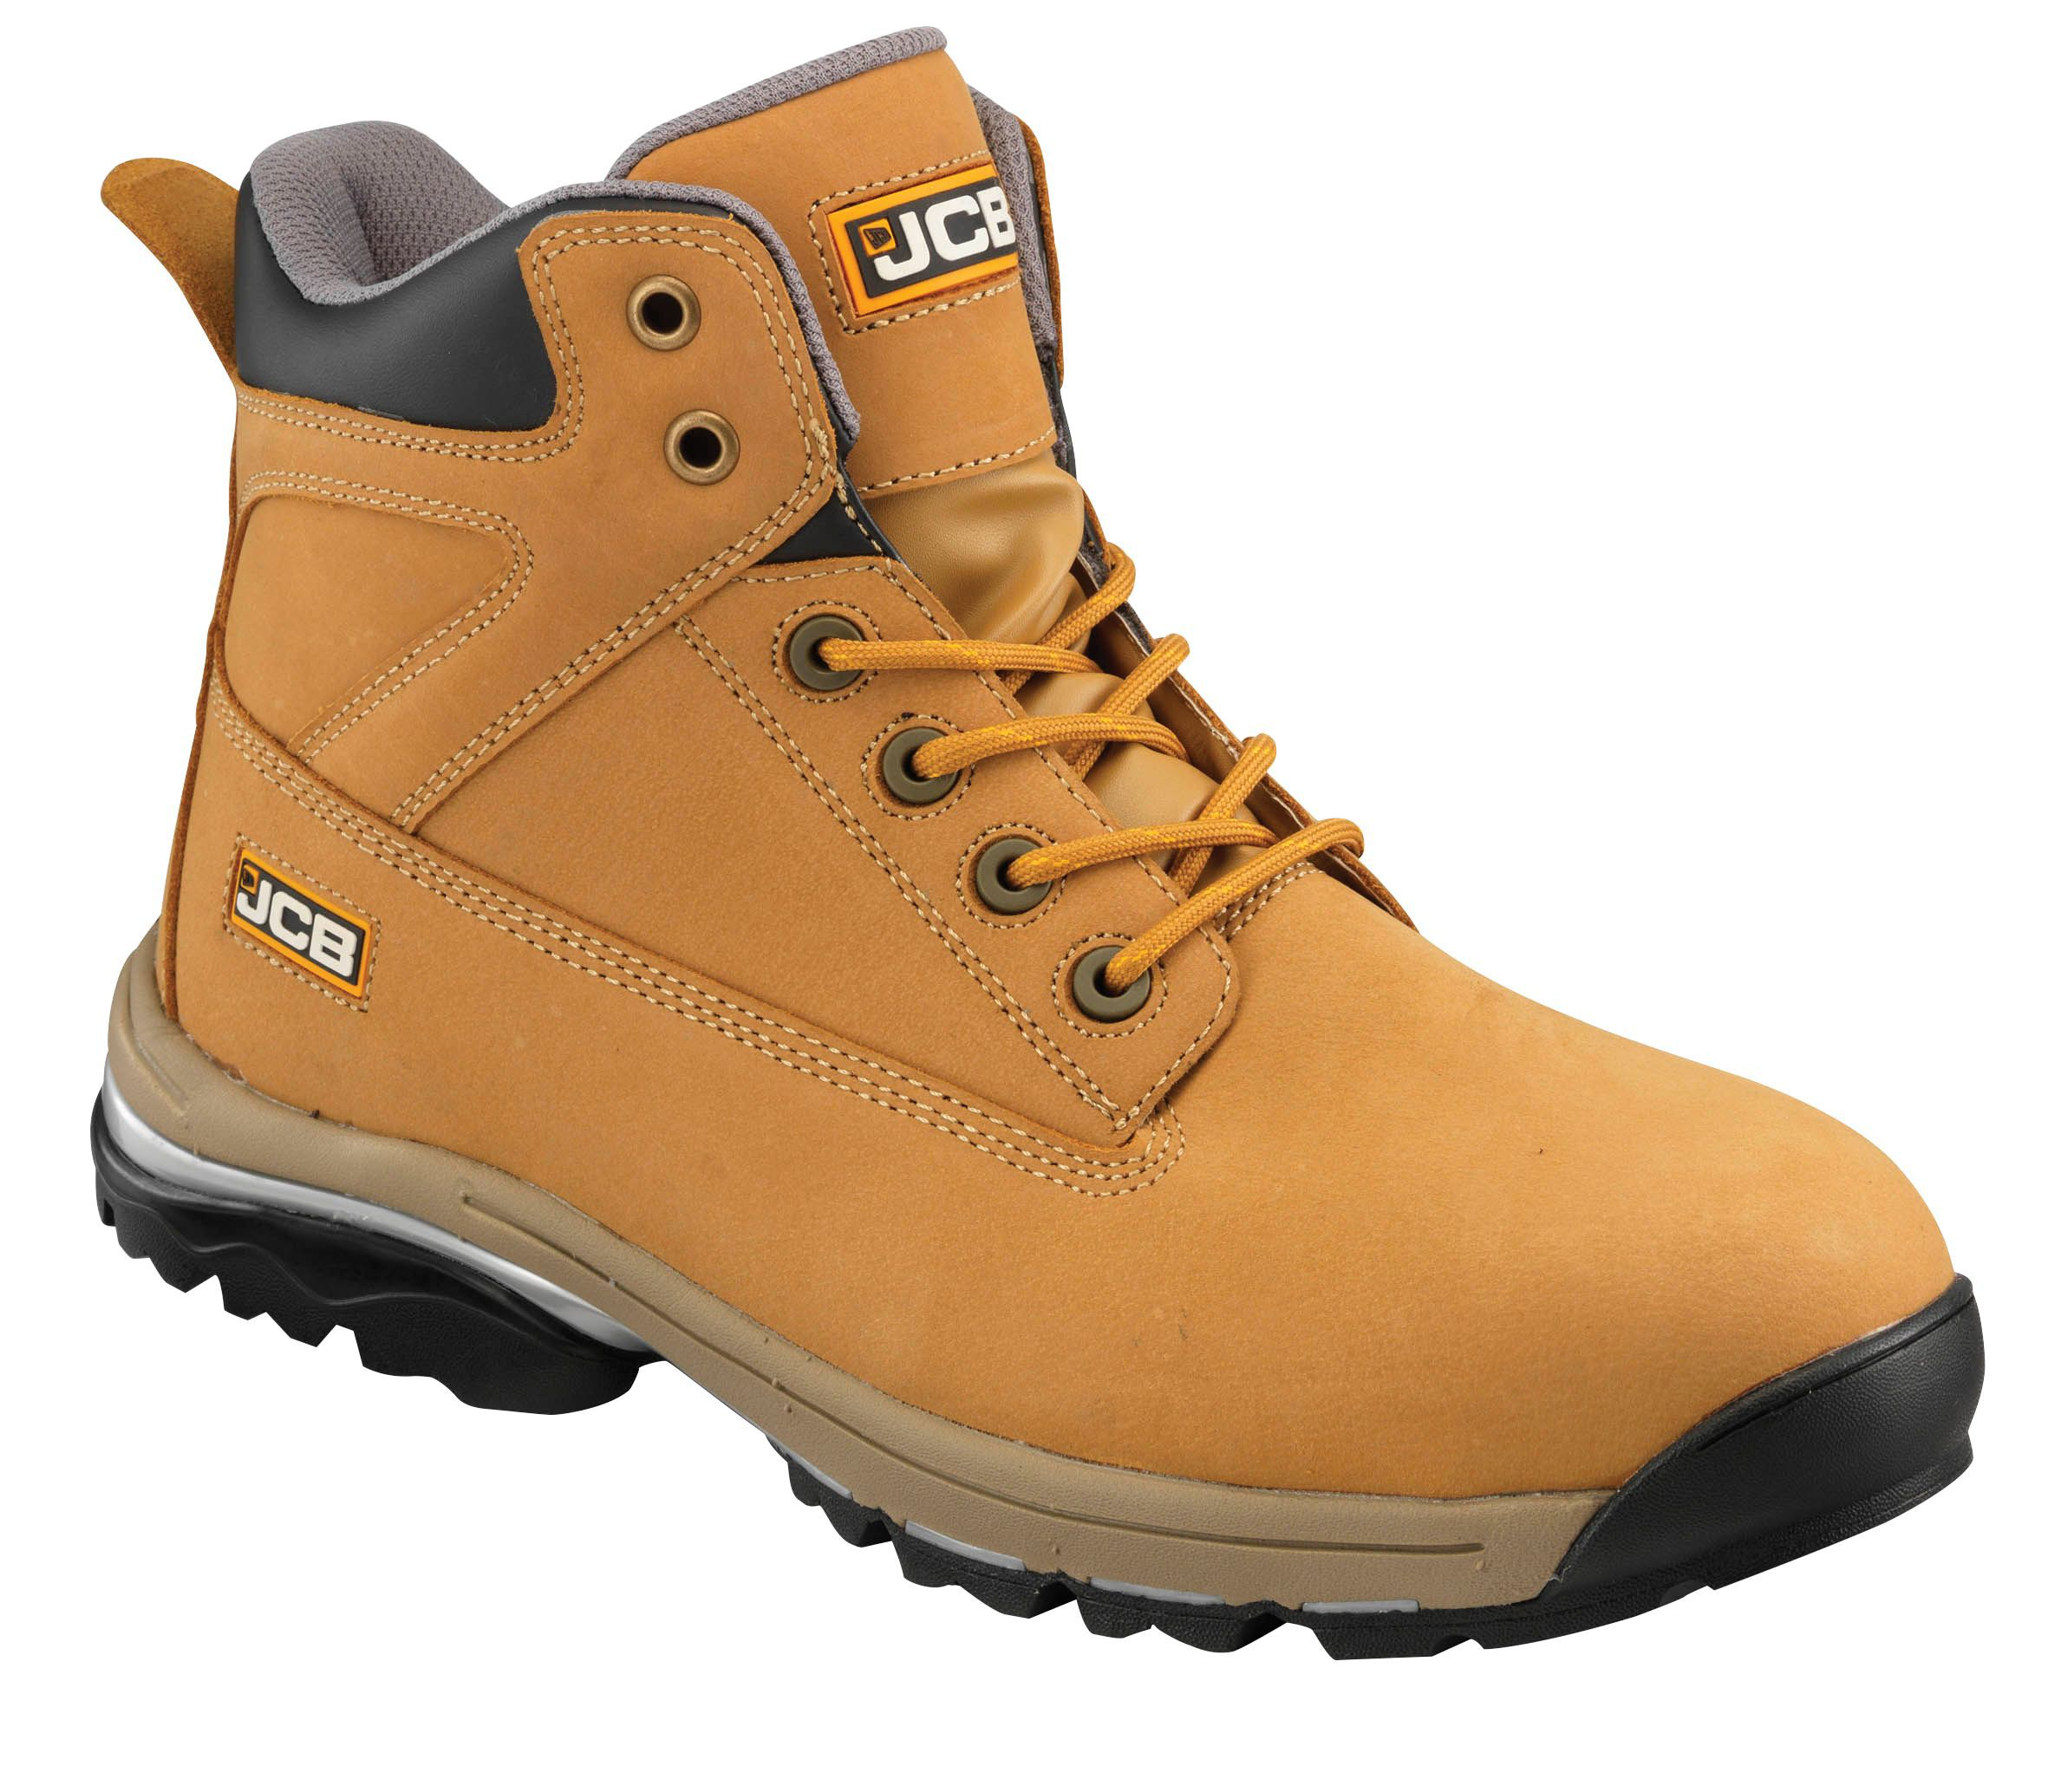 Jcb Honey Workmax Boots, Size 7